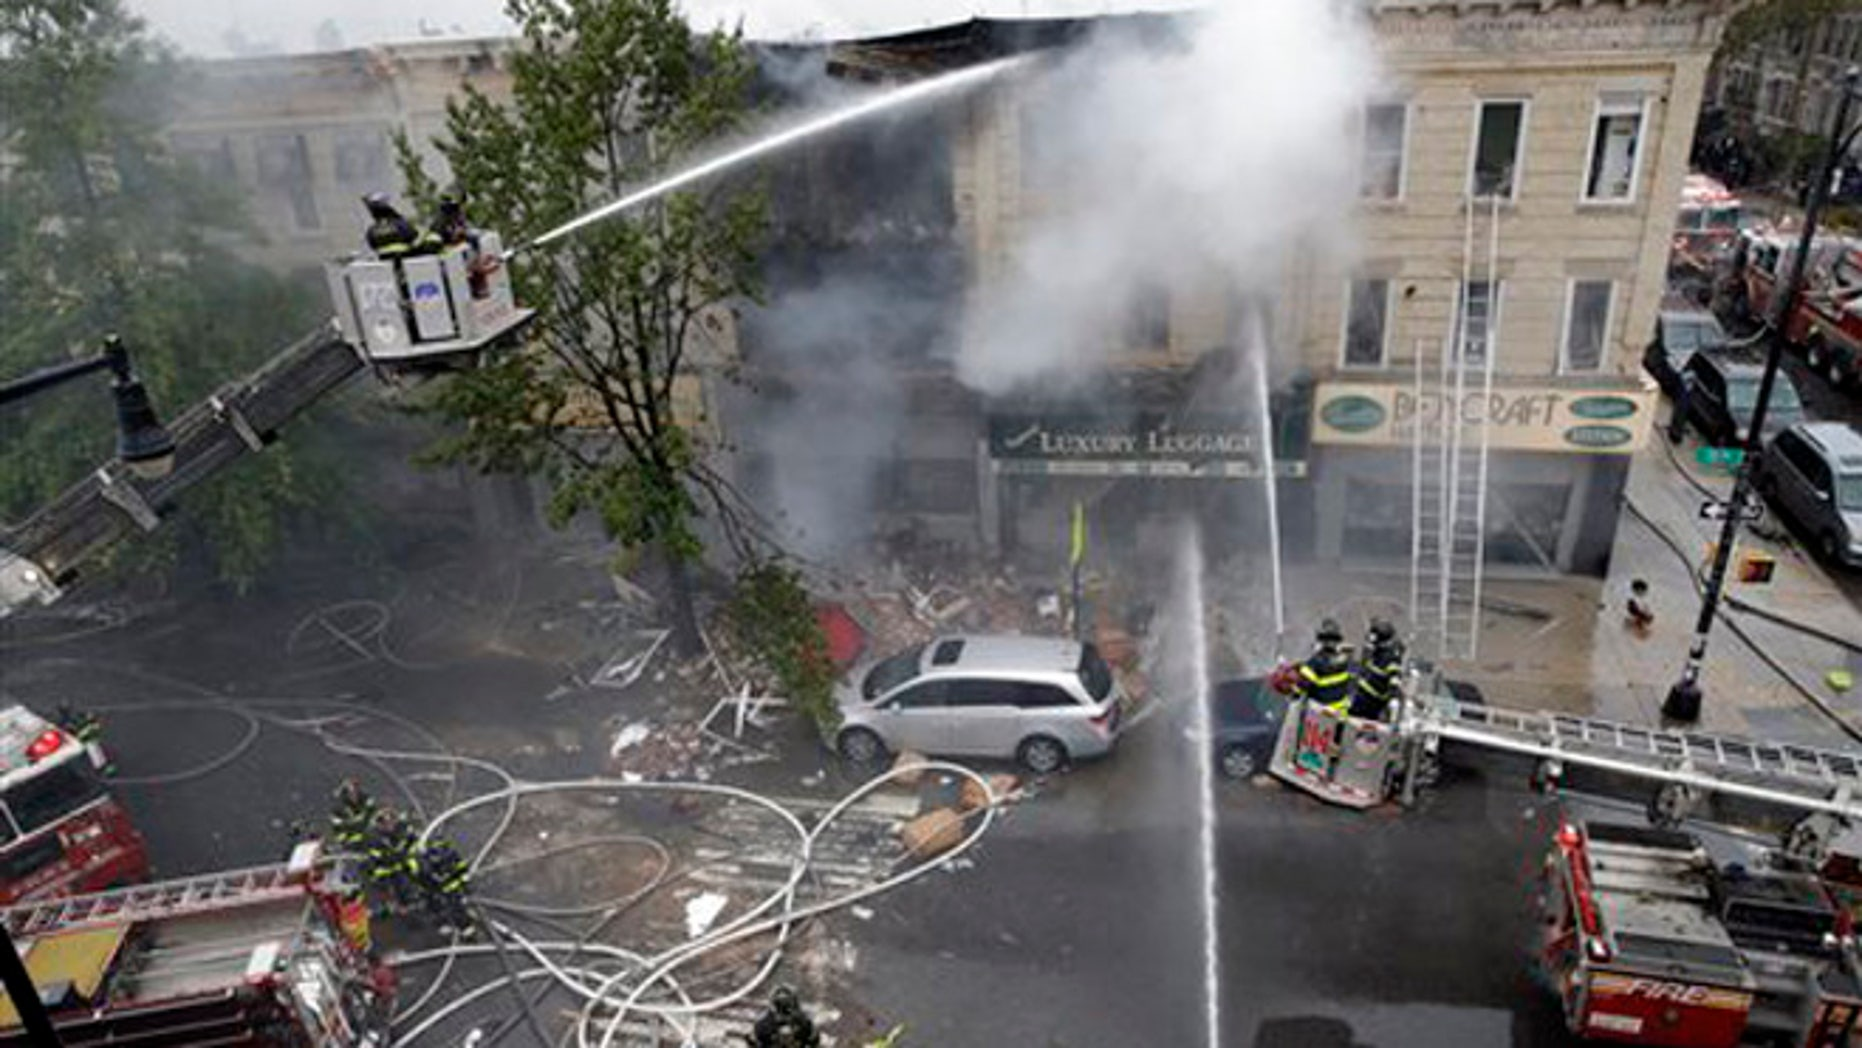 Oct. 3, 2015: Firefighters work at the at the scene of an explosion at a three-story building in the Borough Park neighborhood in the Brooklyn borough of New York.